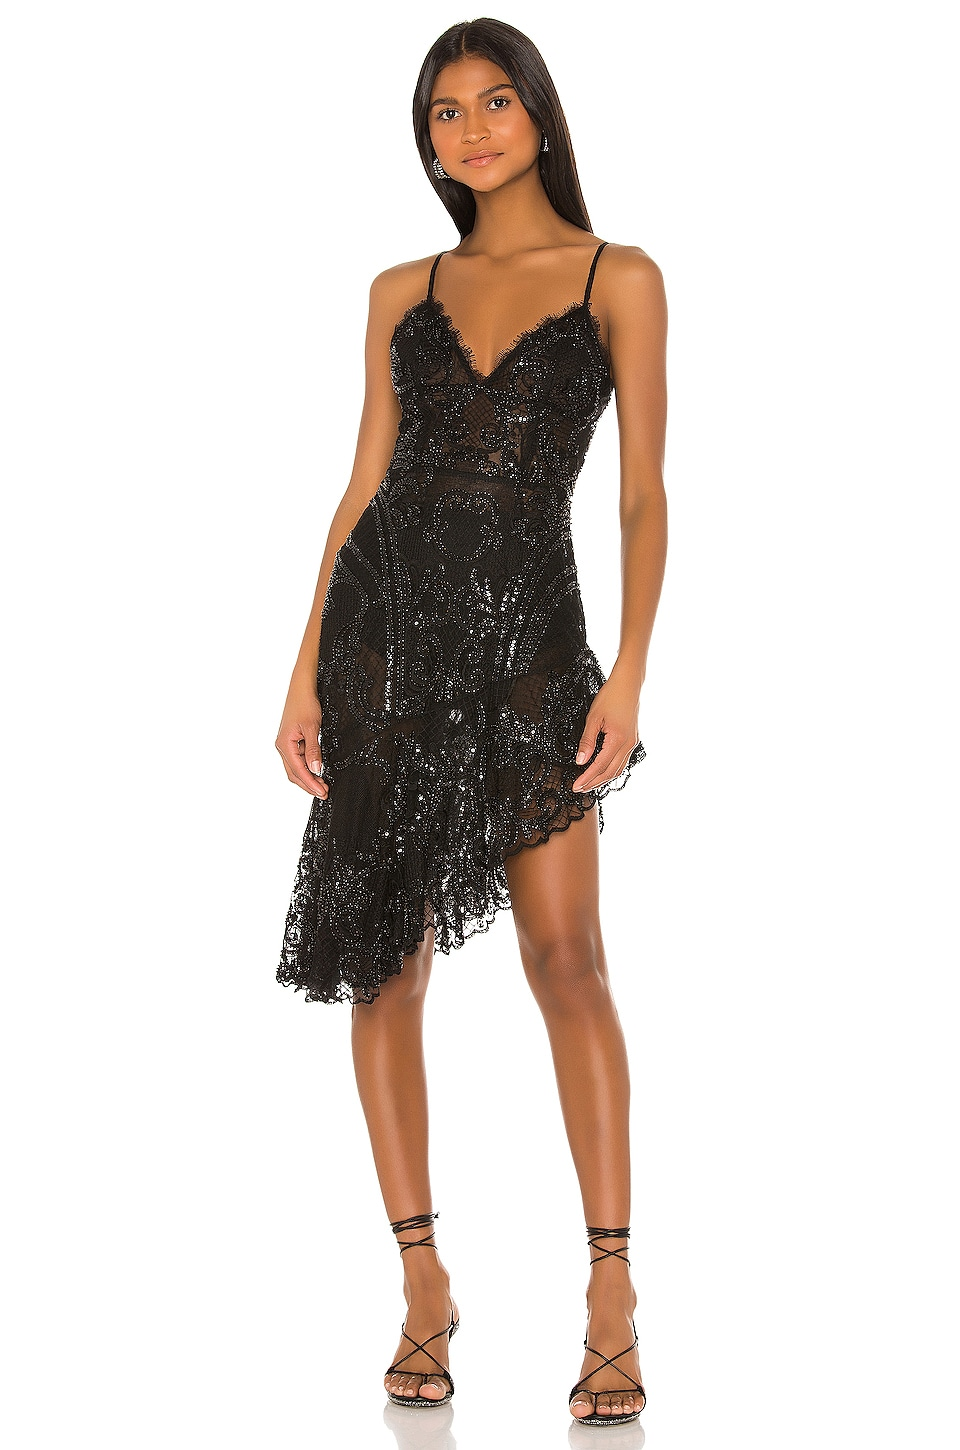 Rêve Riche REVE RICHE Dalila Dress in Black